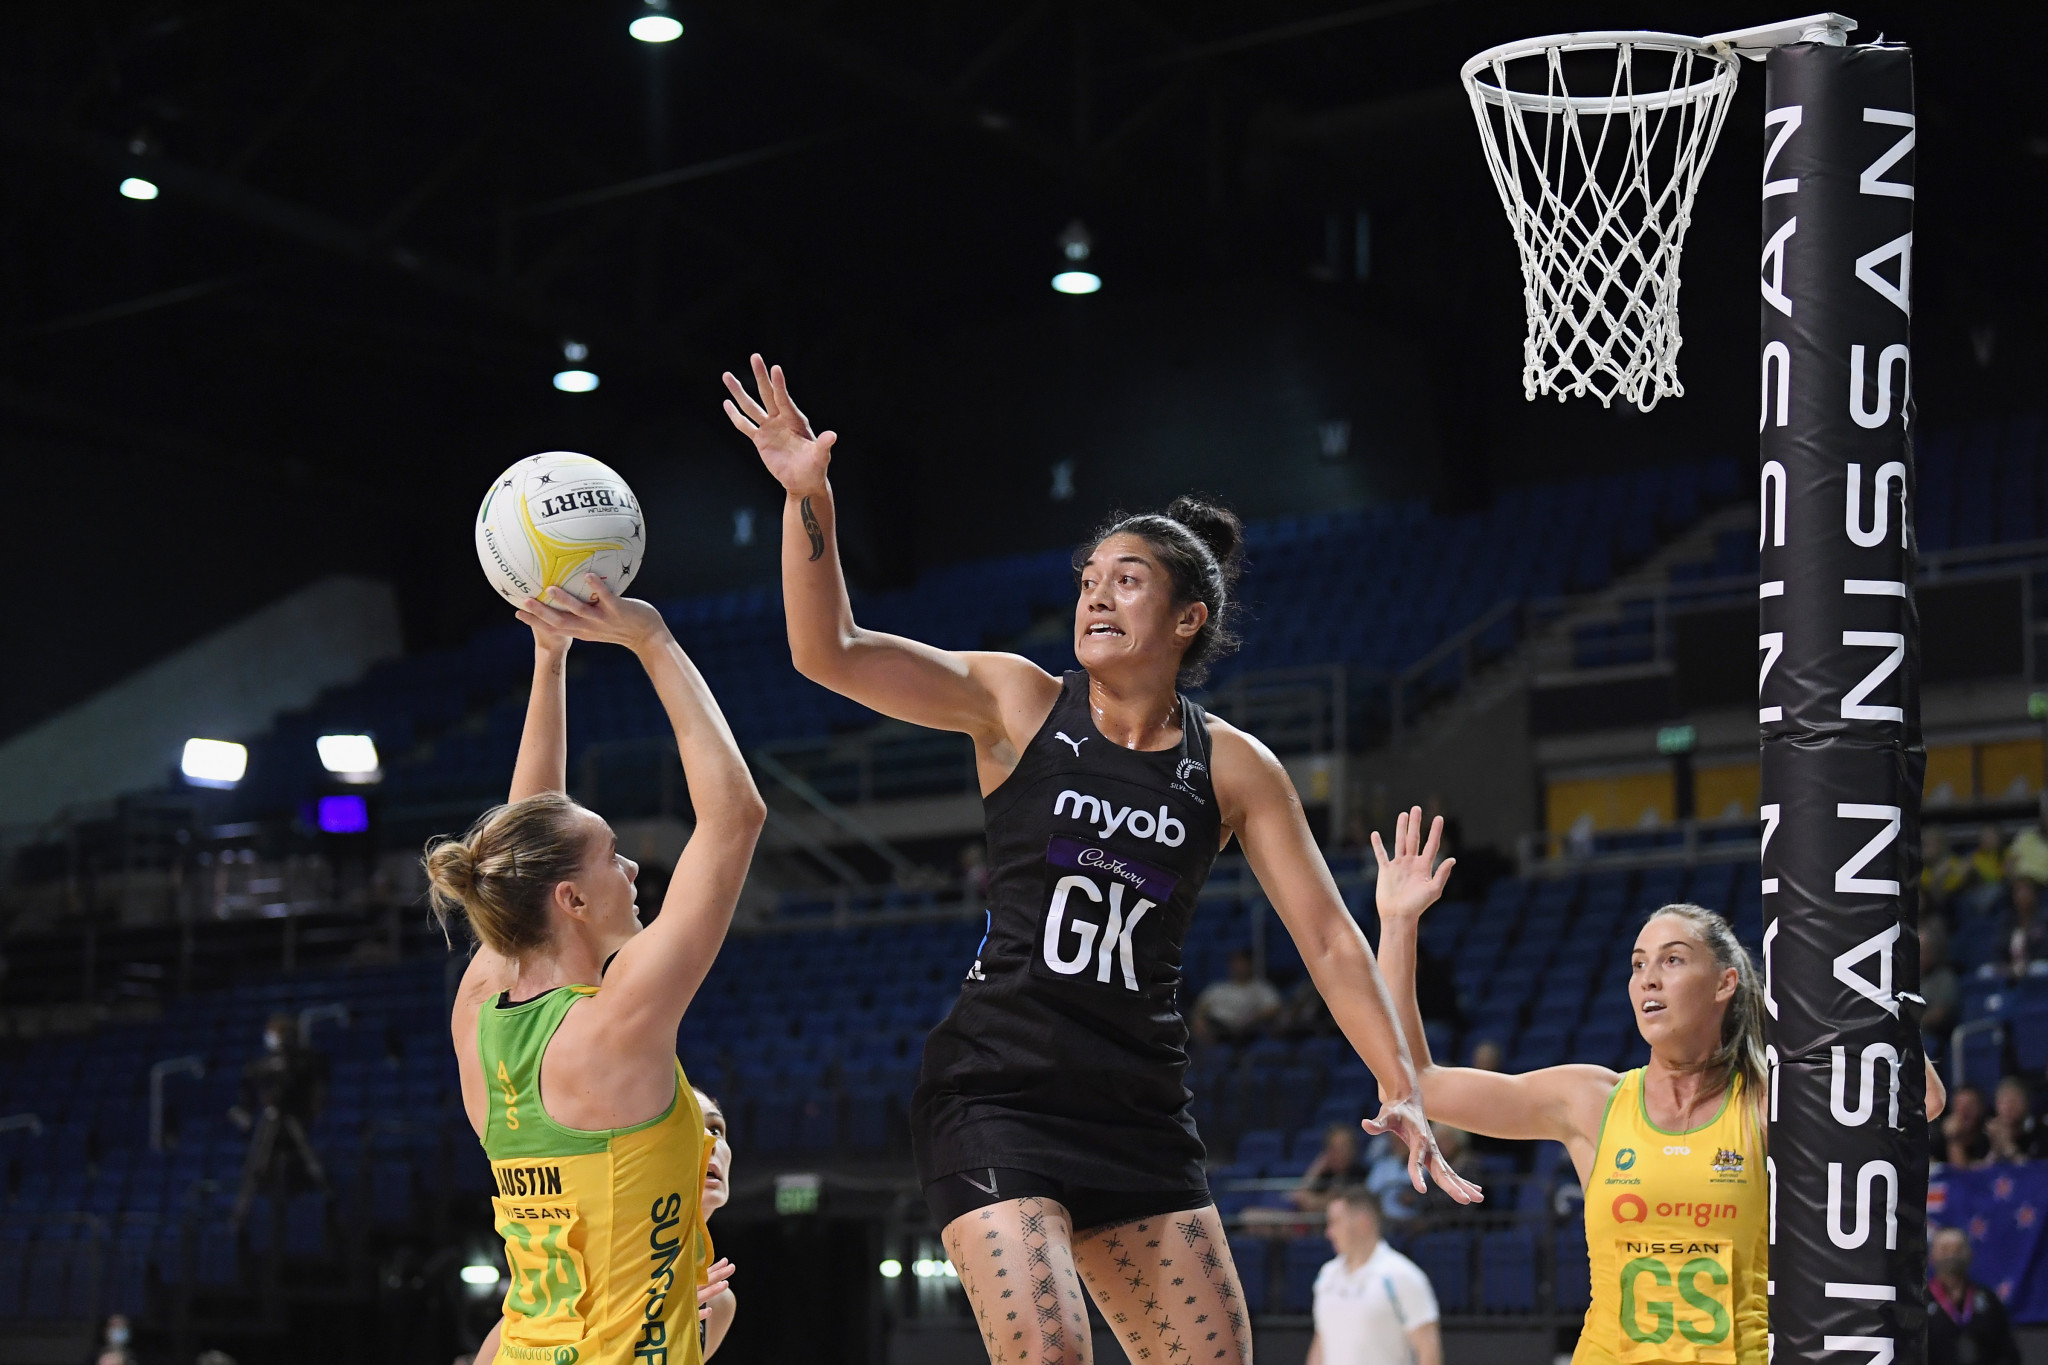 International Netball Federation delays Birmingham 2022 qualification deadline